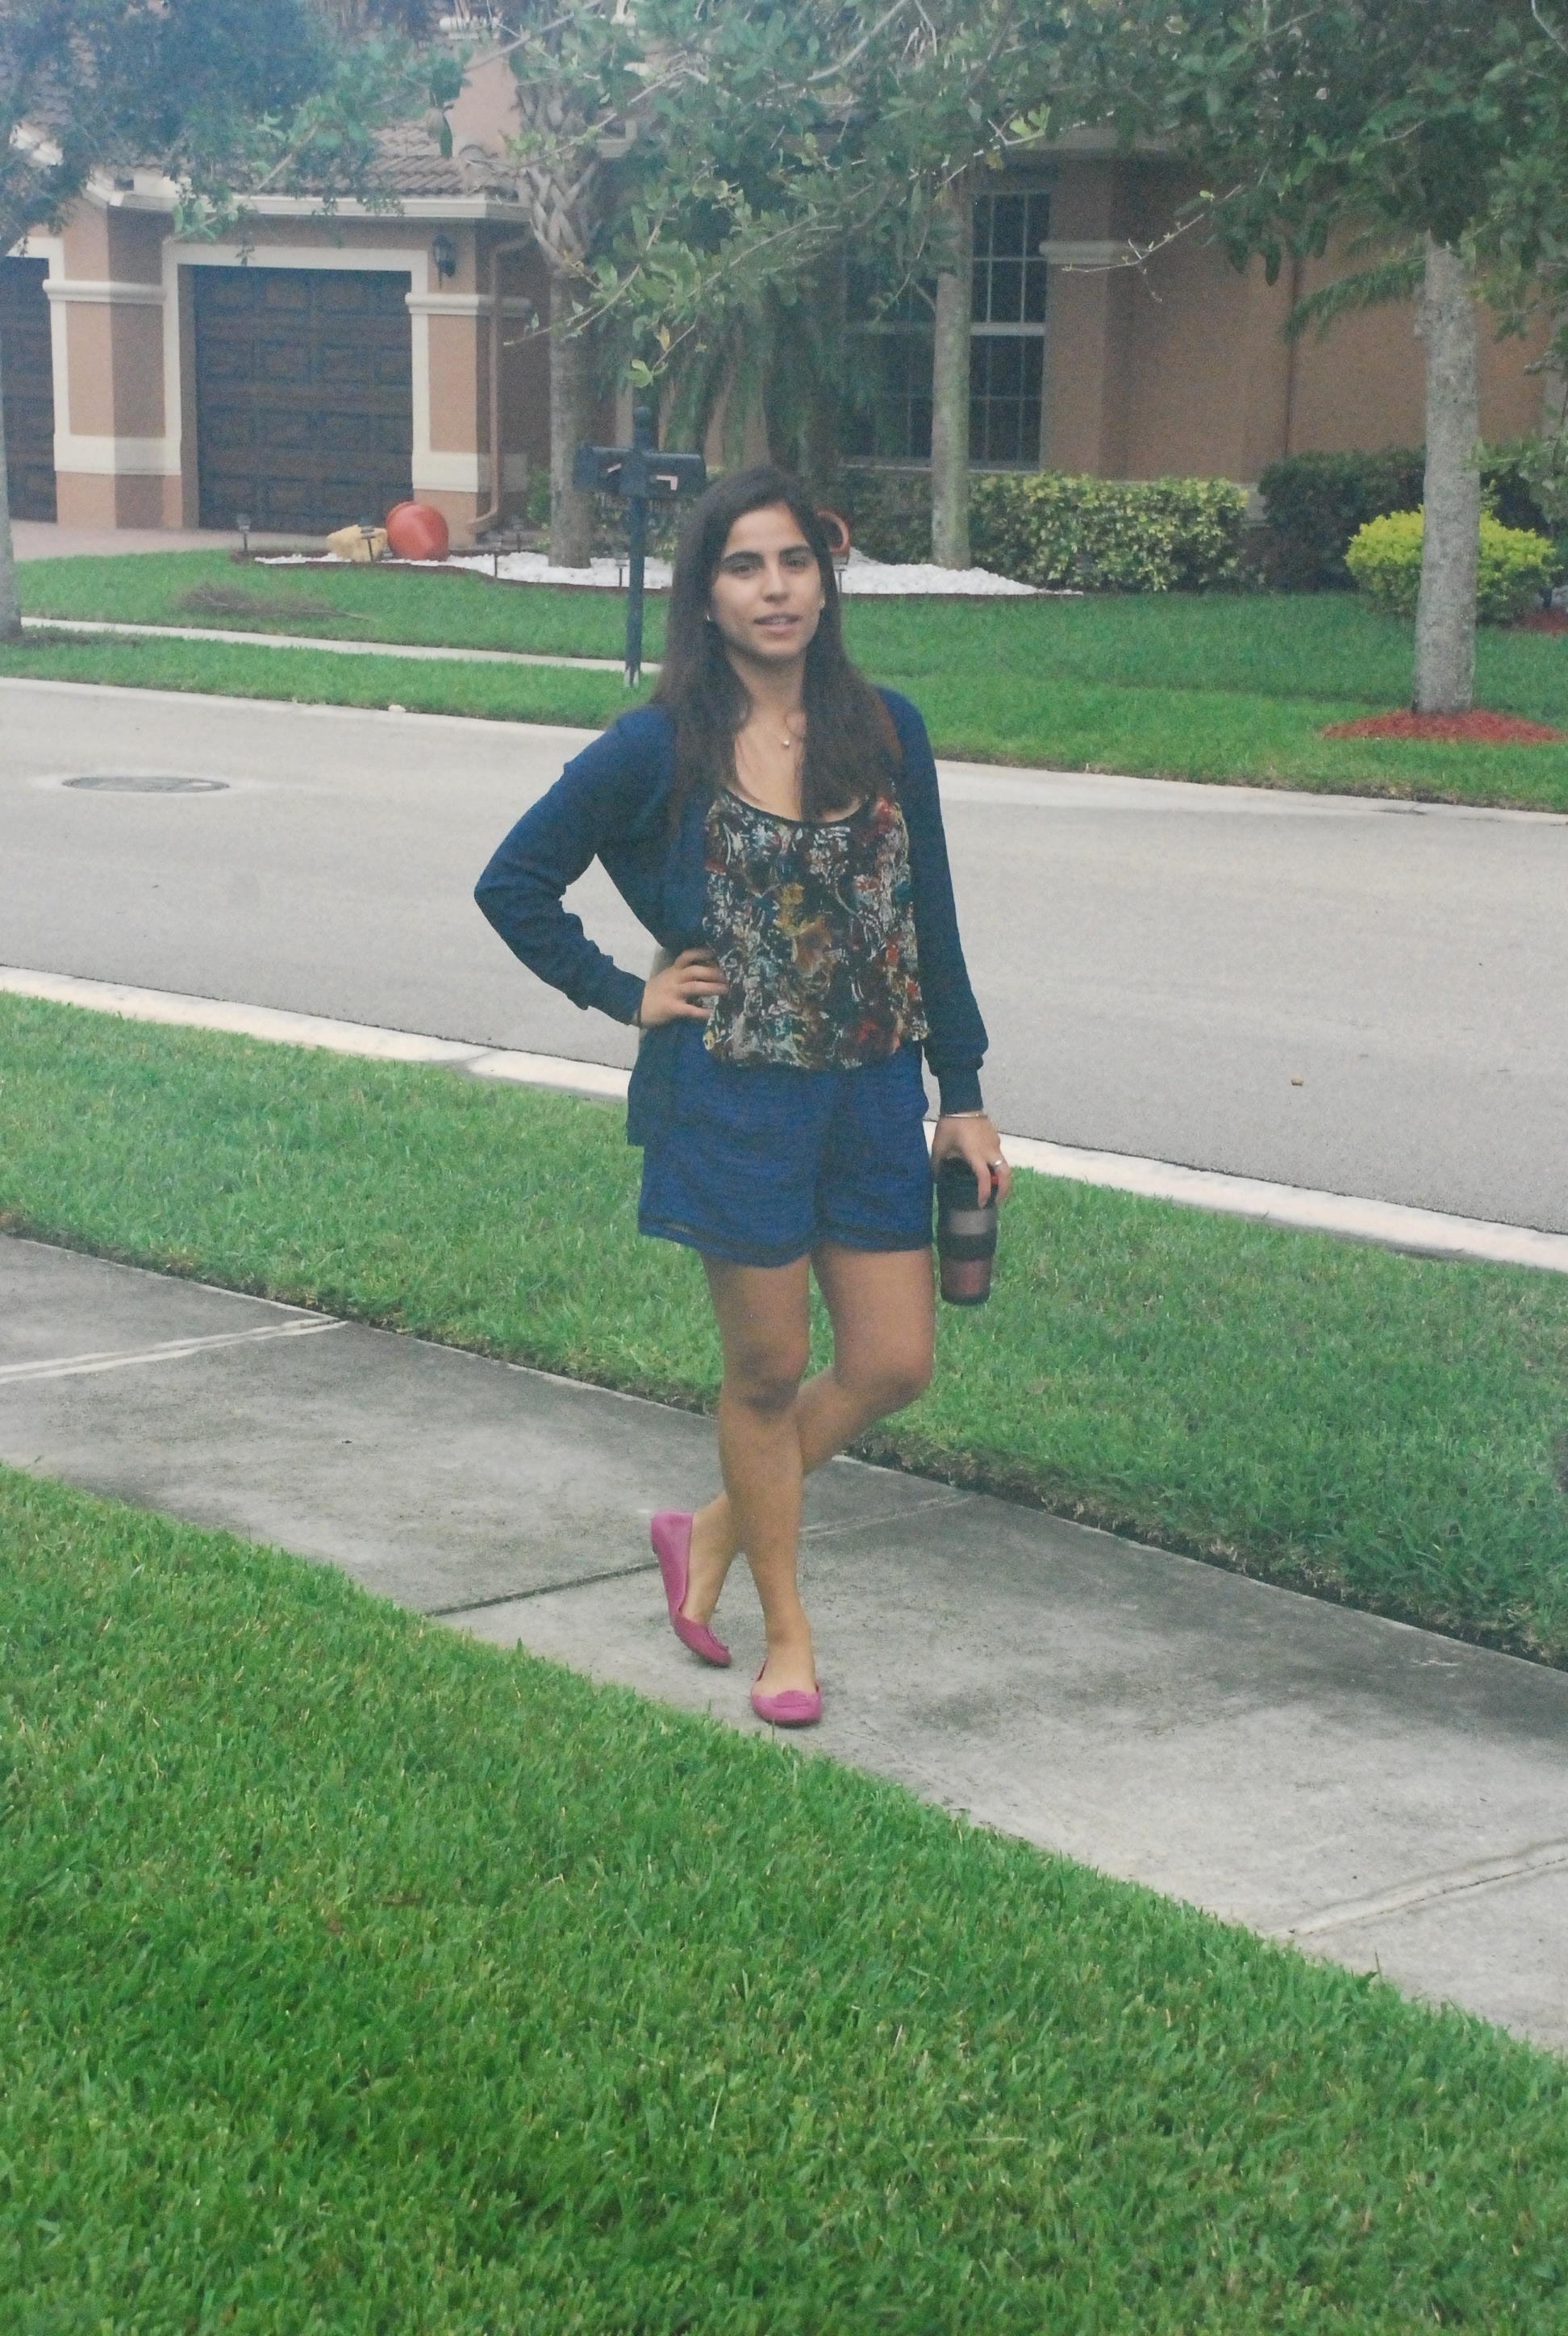 personal blog, ootd, what i wore, outfit, my style, beyonce, concert attire